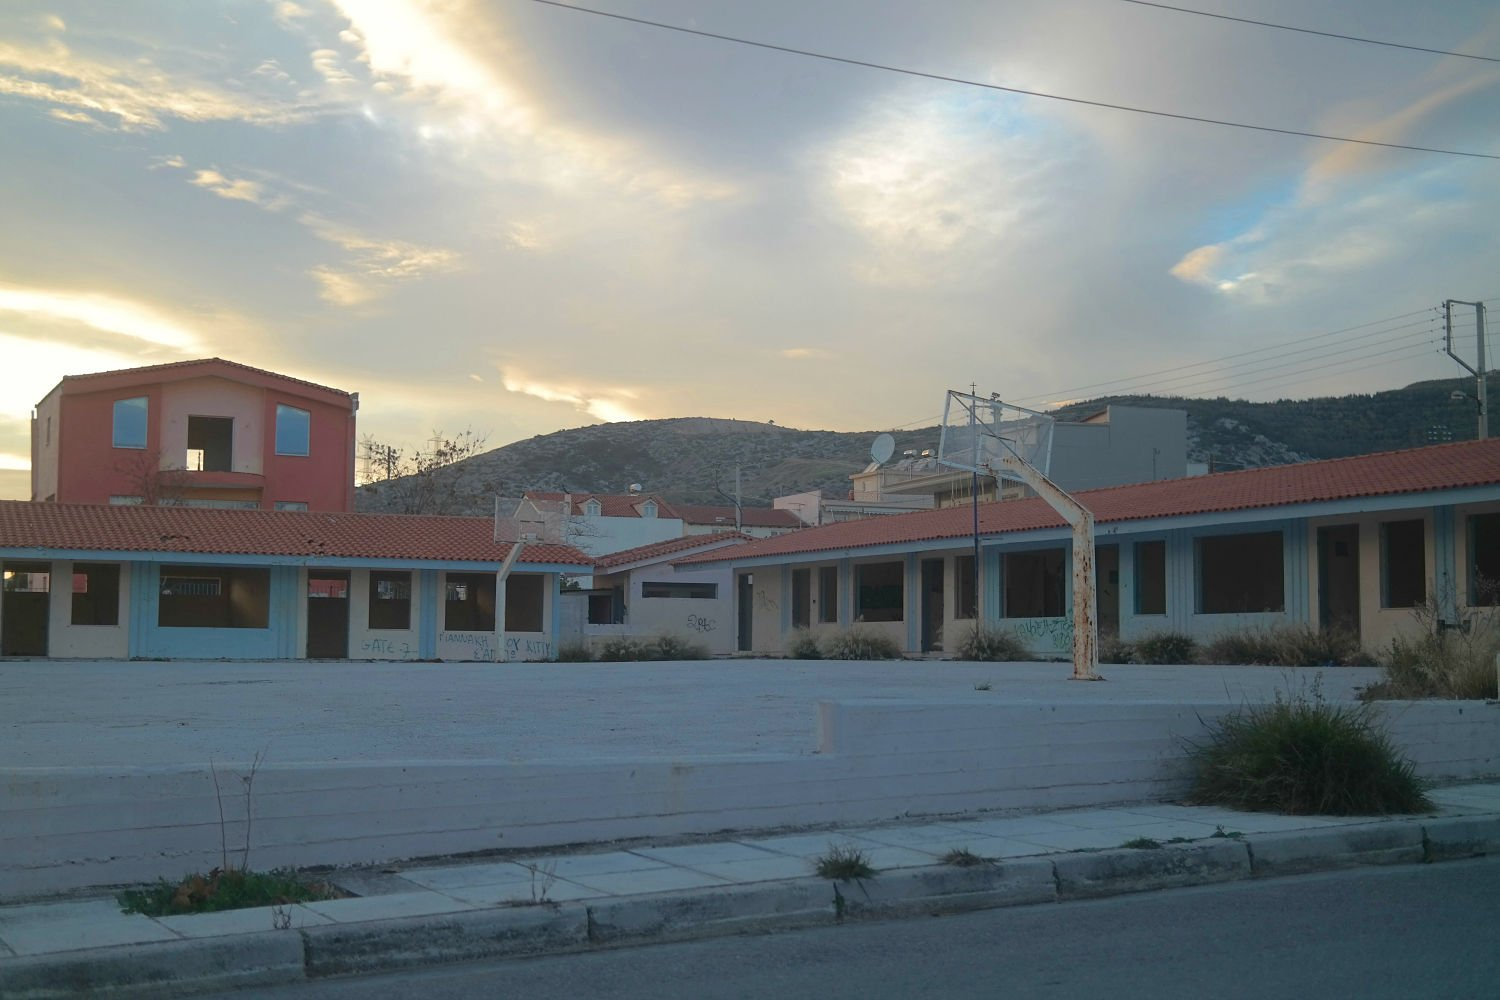 secondary potential site for Hellenic Ministries' future Hope School called Petalouda